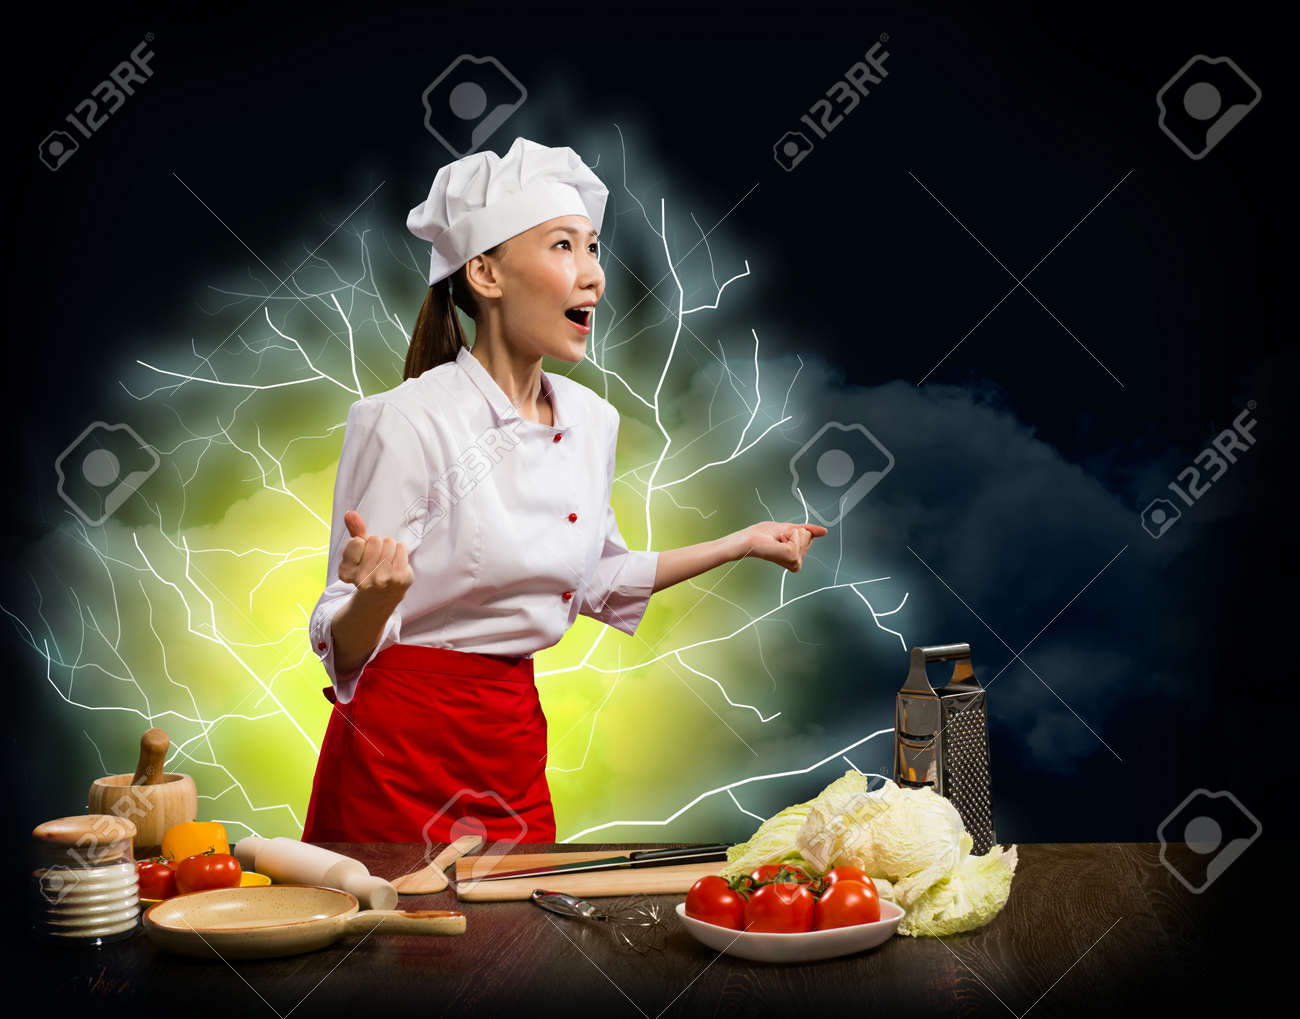 Asian woman furious chef shouting with clenched fists, lightning and flashes of light Stock Photo - 18200569